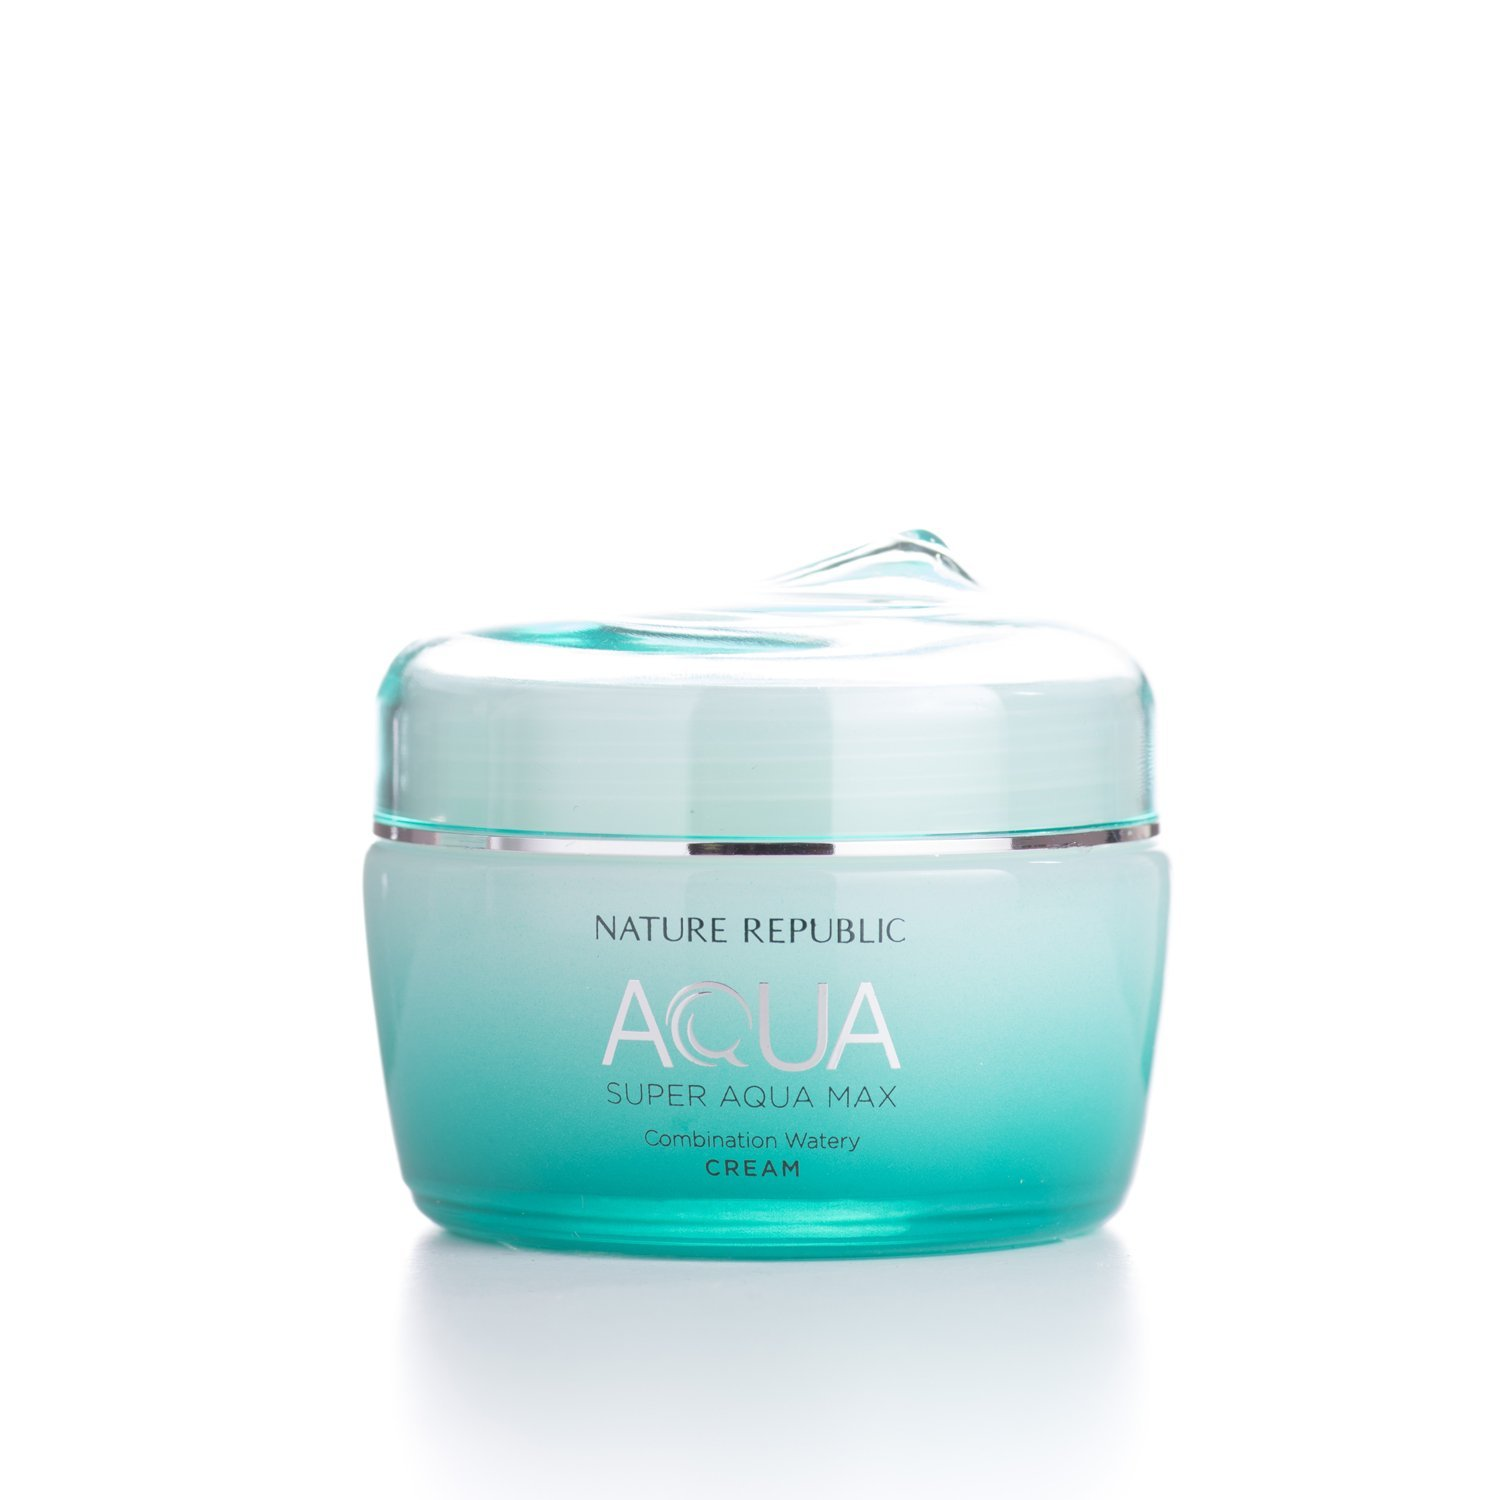 NR Super aqua max combination watery cream